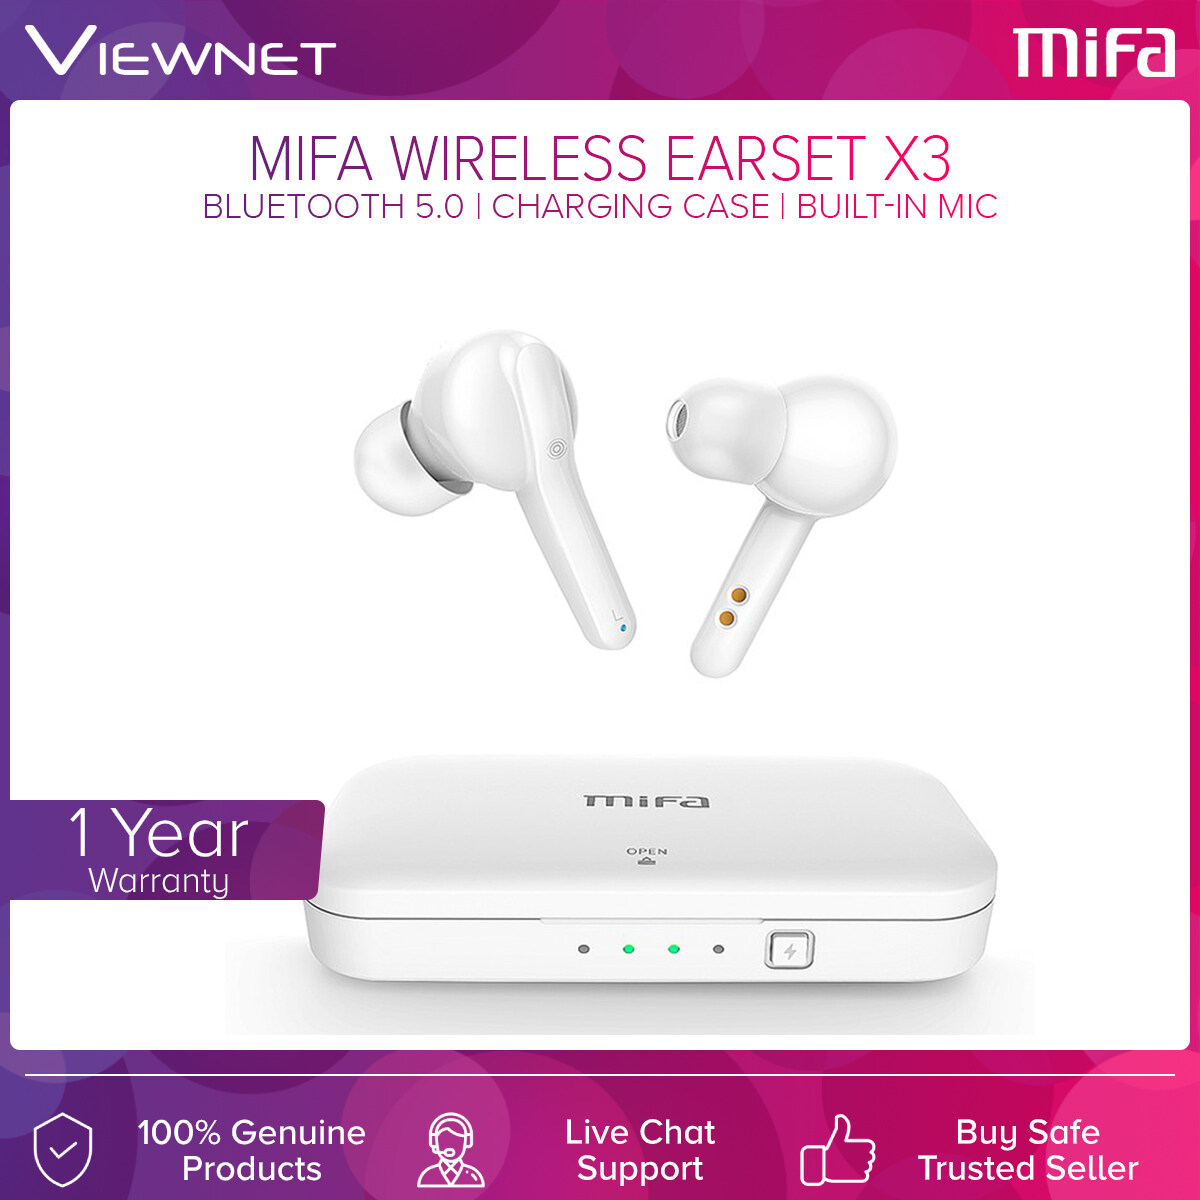 Mifa True Wireless Earset X3 with Bluetooth 5.0, Built-In Mic, Charging Case, Noise Cancelling, Up To 4 Hours Battery Life, 50 Hours Stanby Time